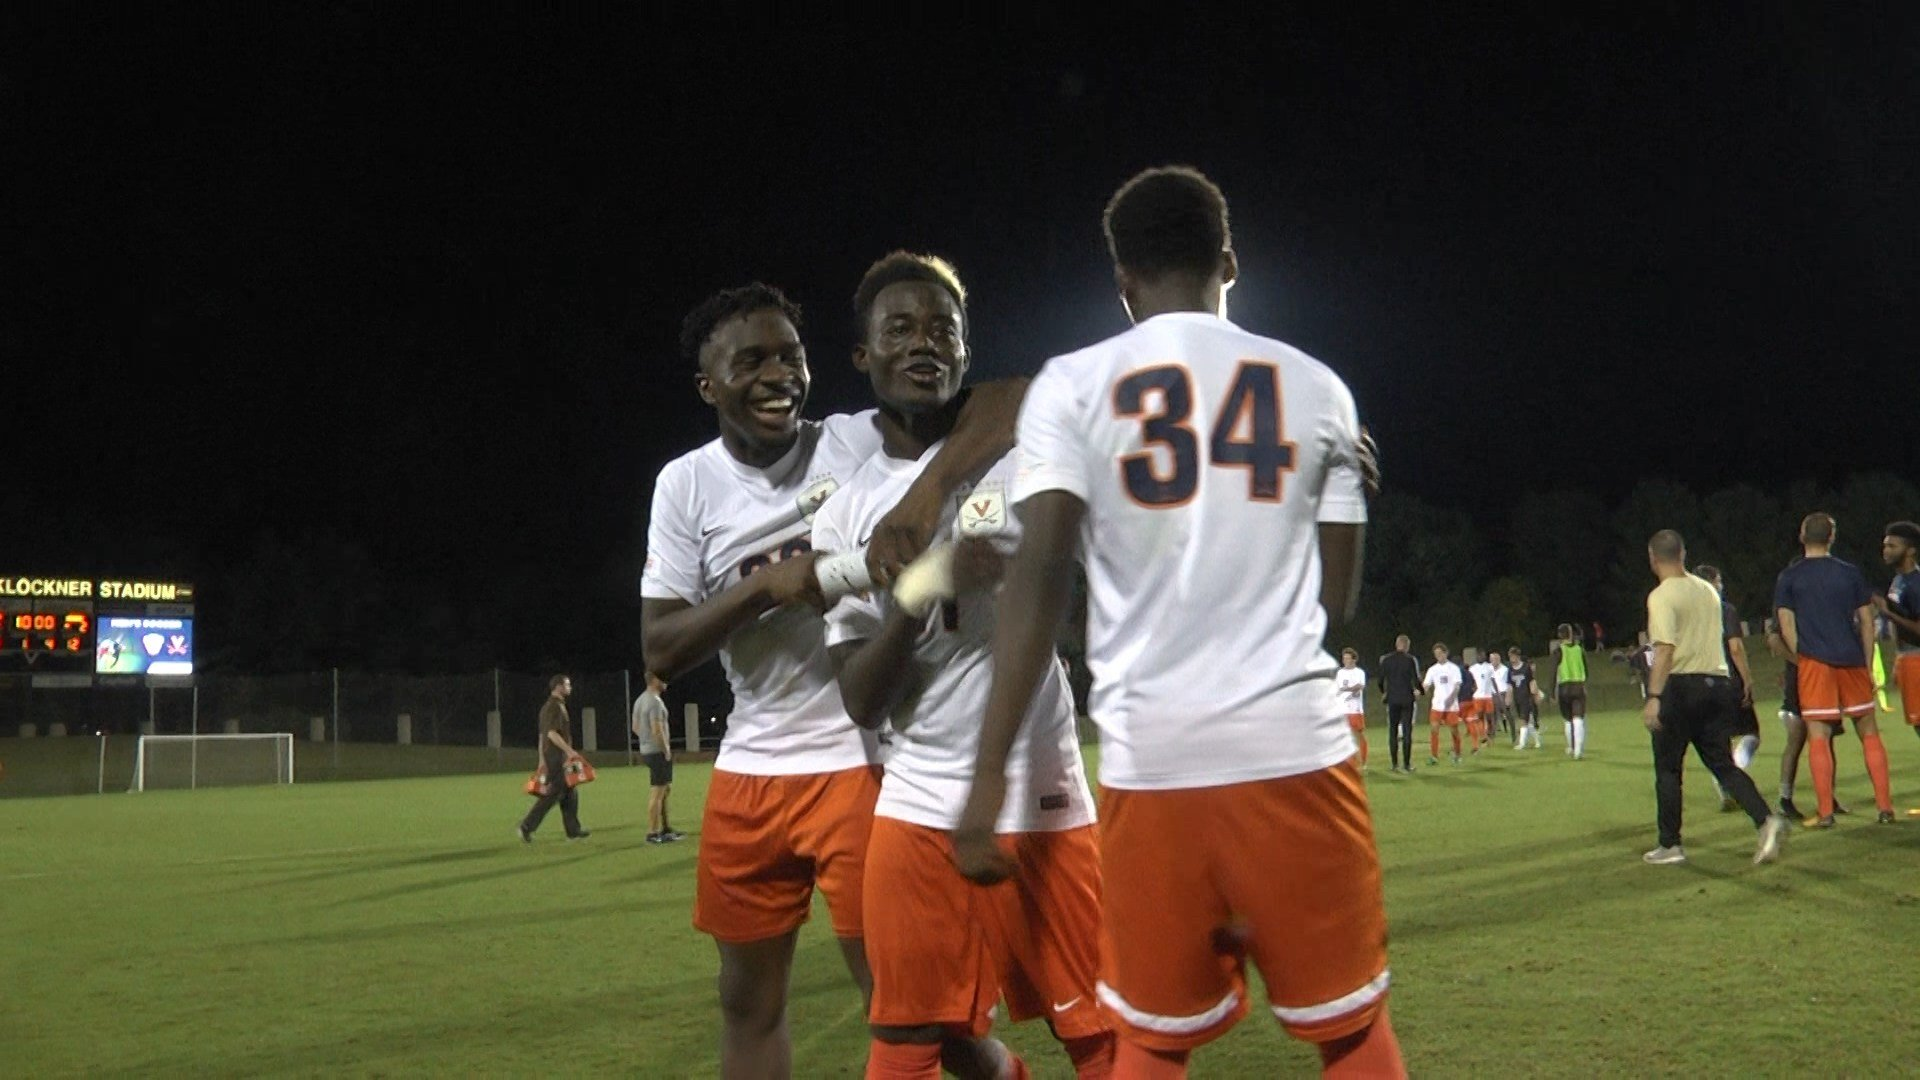 Edward Opuku scored his career-high 7th goal of the season